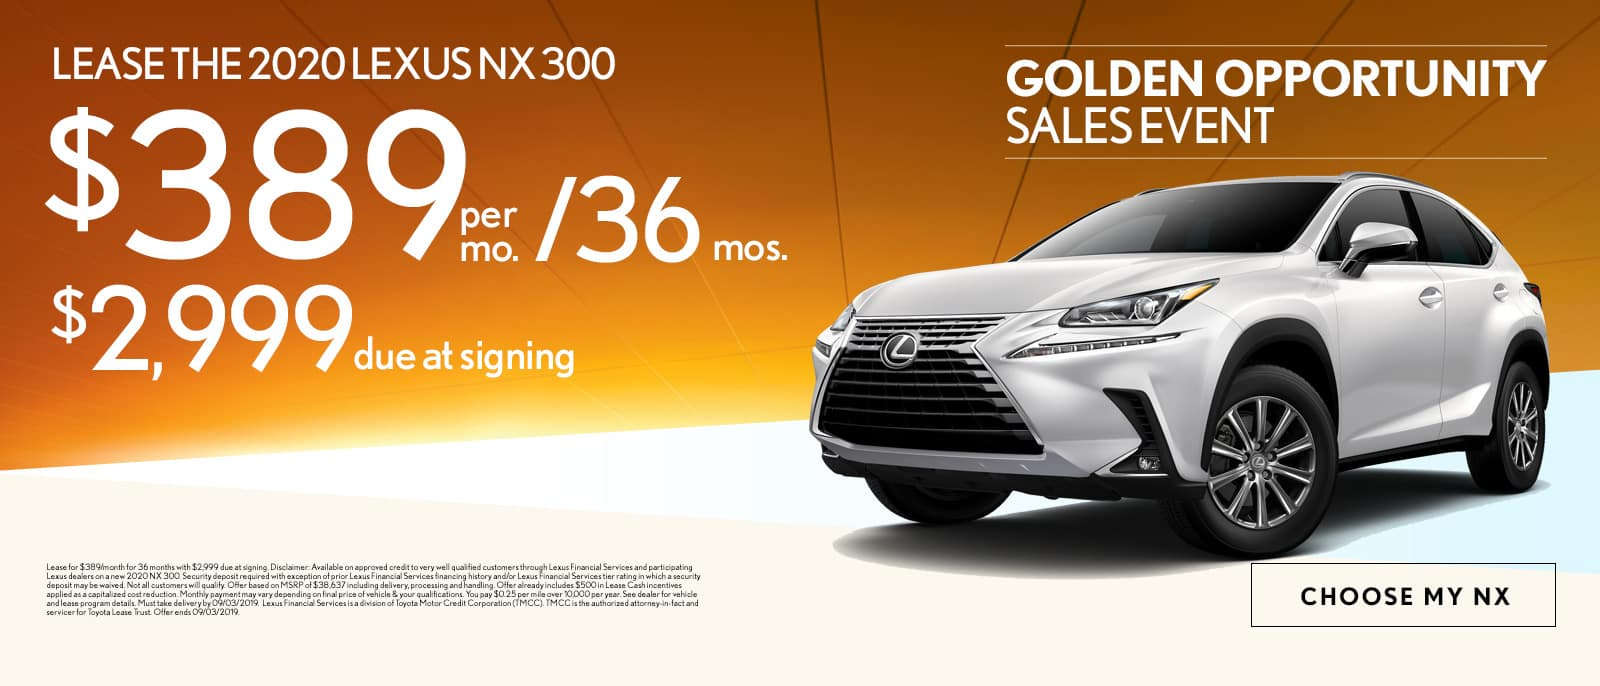 Lease the 2020 Lexus NX 300 for $389 per month for 36 months with $2,999 due at signing - Choose my NX